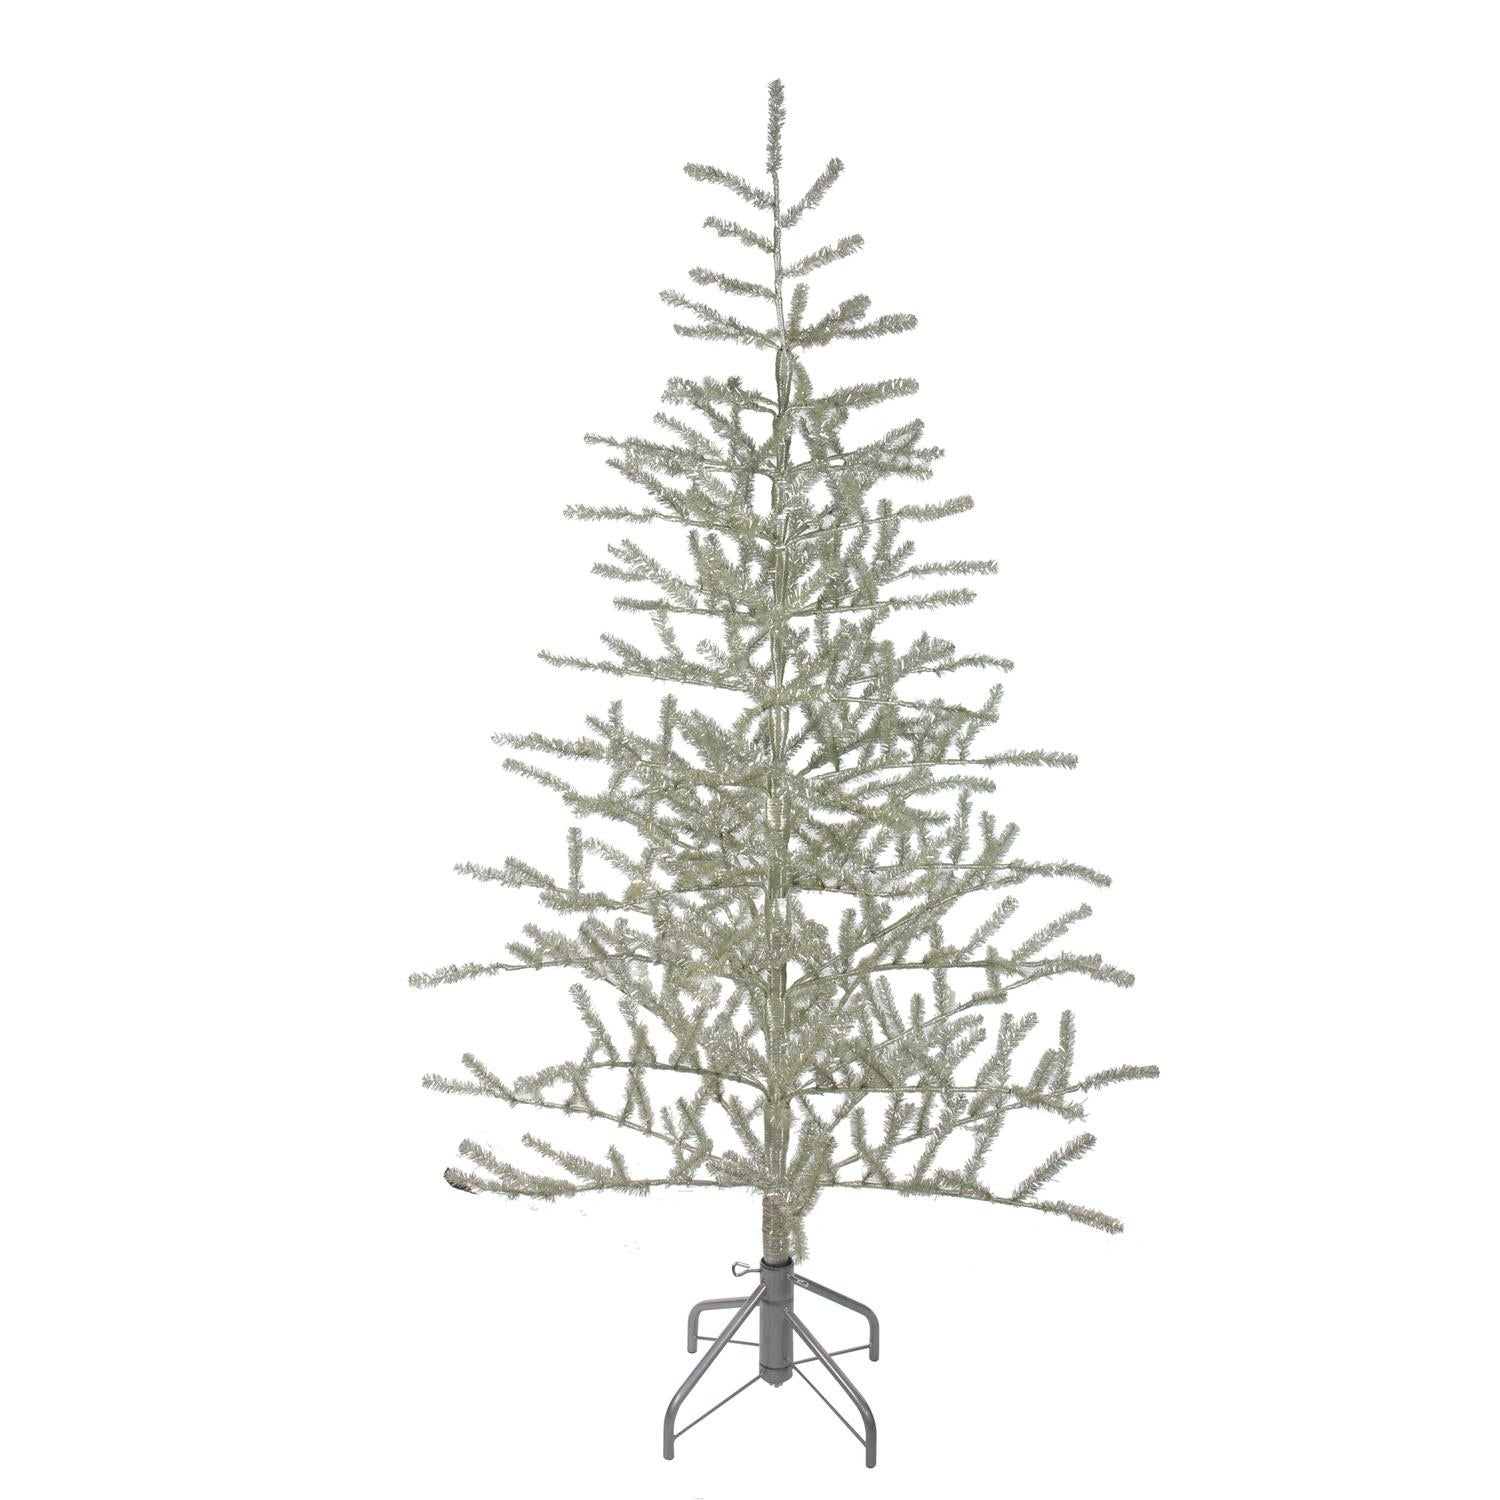 Tinsel Christmas Tree.5 Champagne Silver Metallic Artificial Tinsel Christmas Tree Unlit